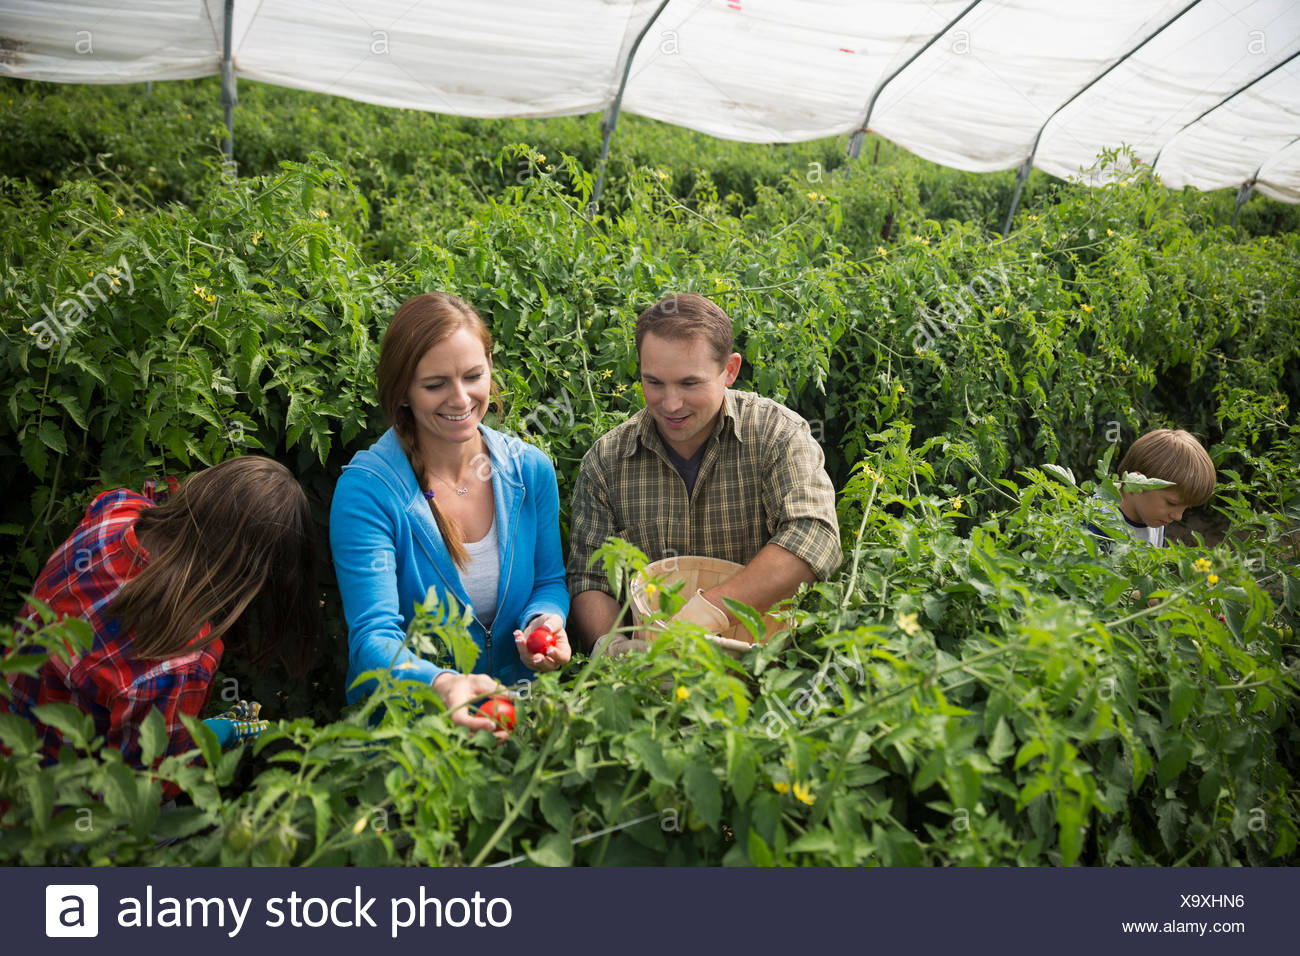 Family picking tomatoes in greenhouse - Stock Image